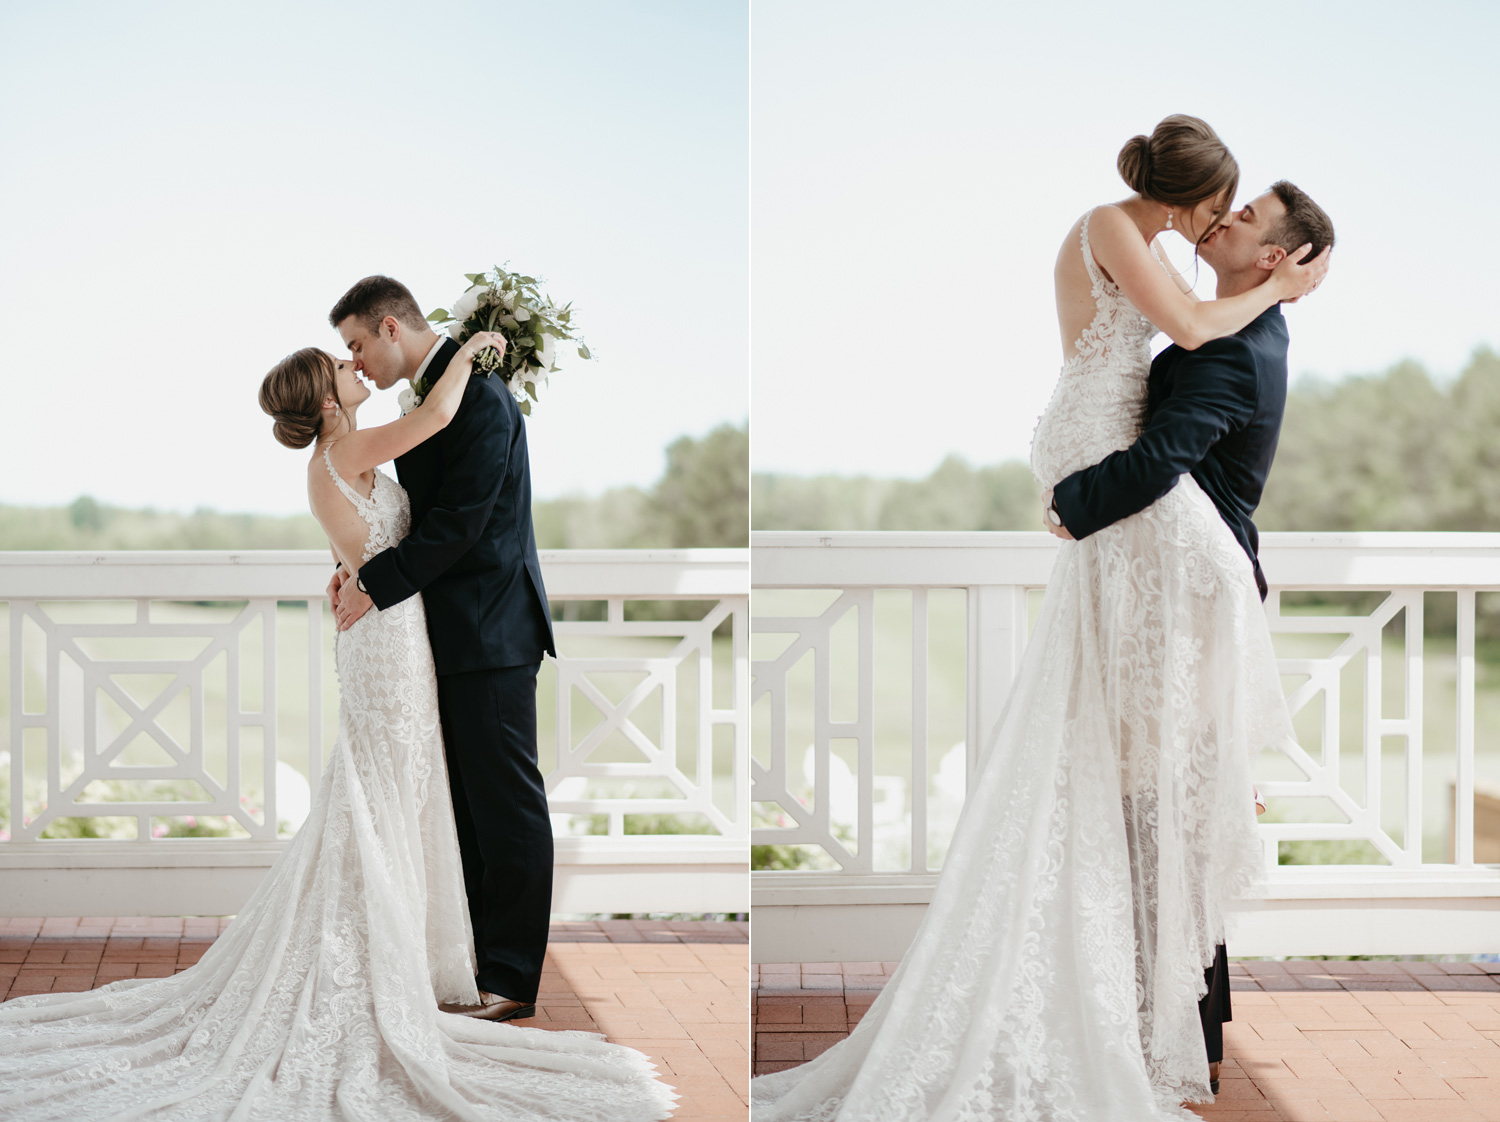 Bride and groom portraits outdoors on a patio